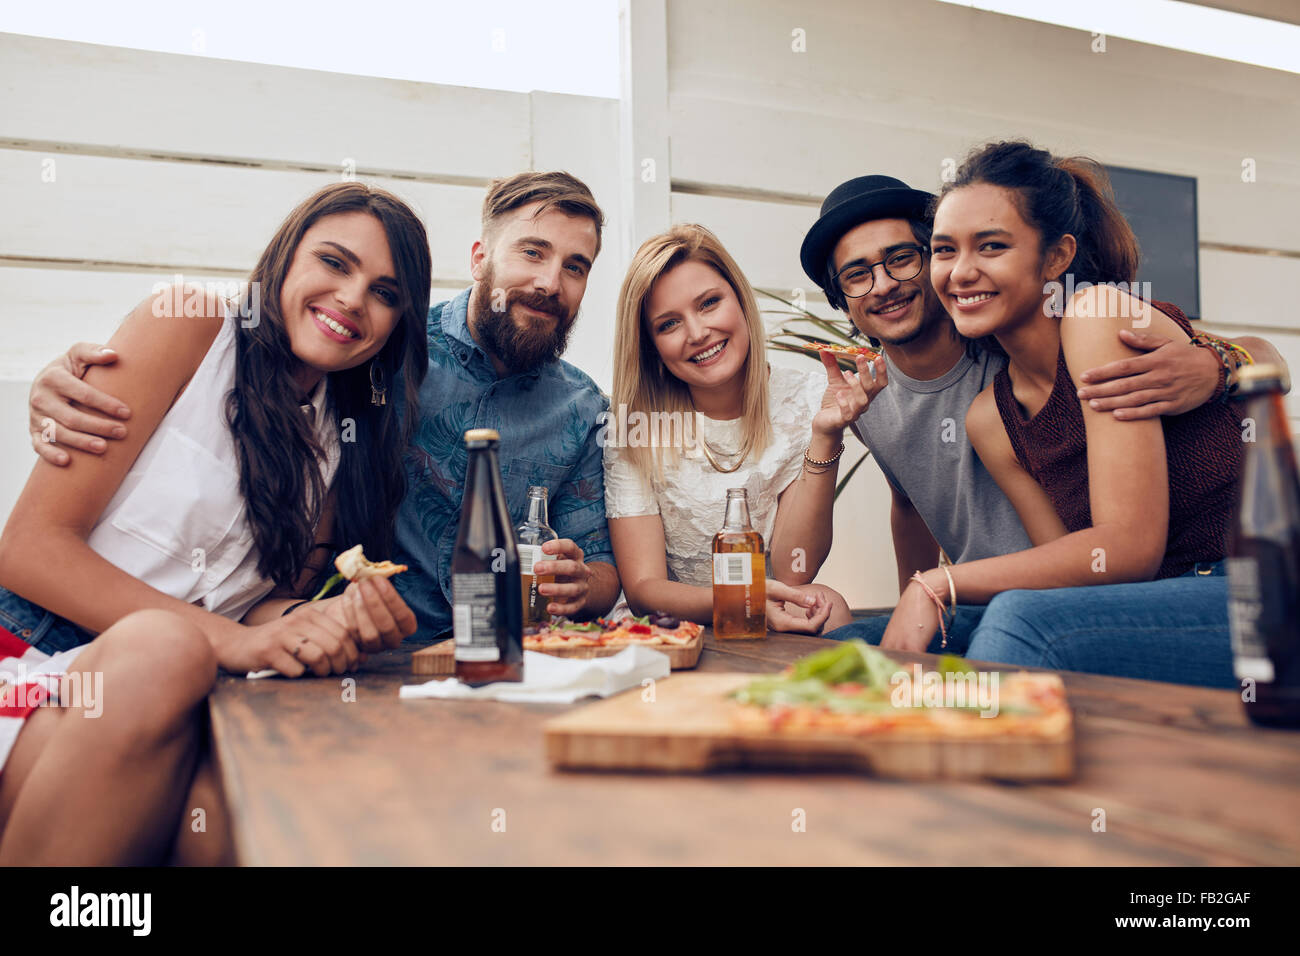 Group of friends gathered around the table at a roof party. Multiracial young people looking at camera and smiling. - Stock Image